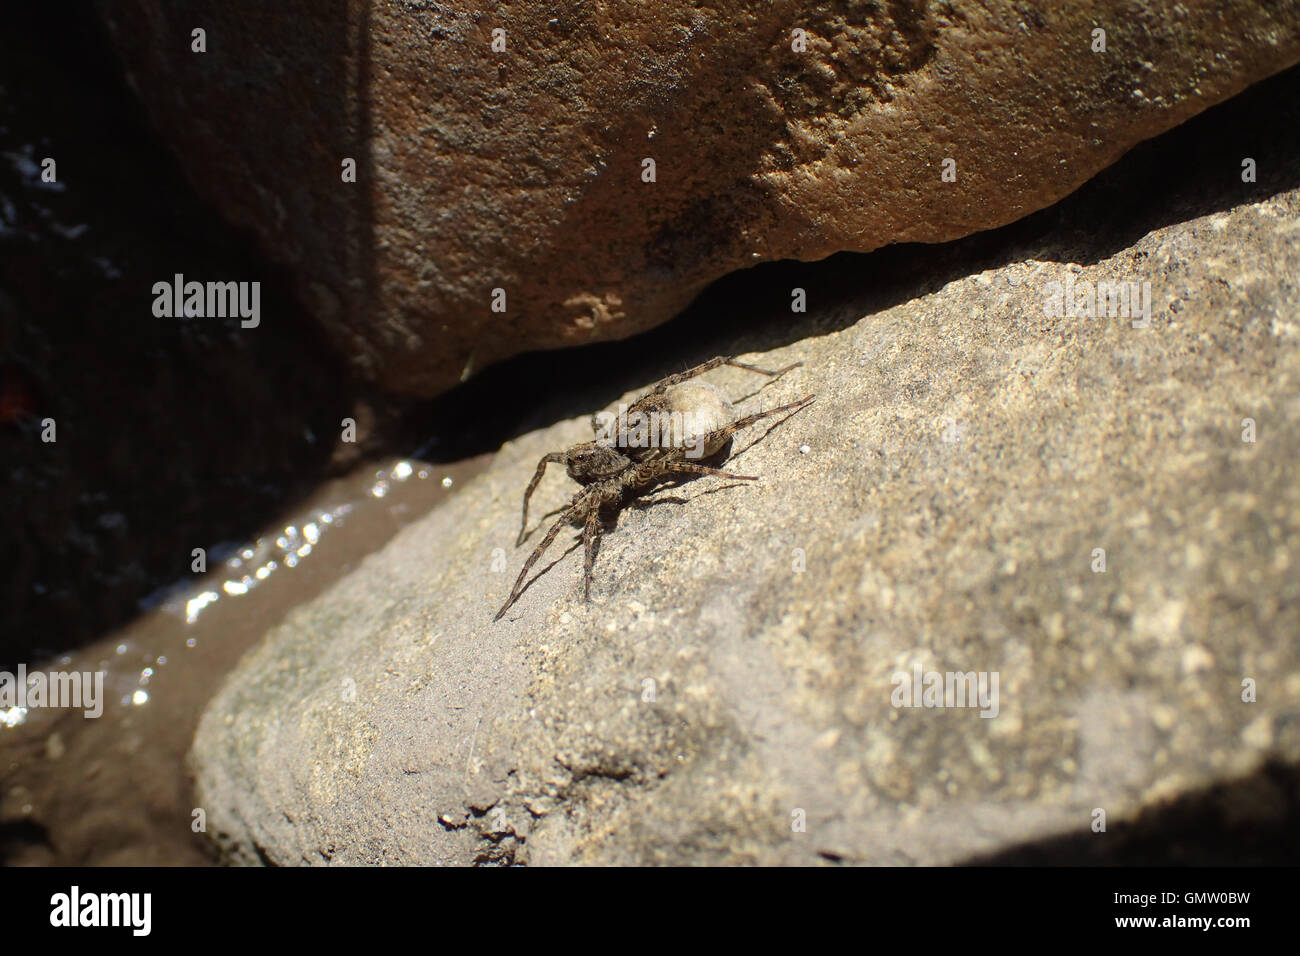 Close-up of female spotted wolf spider (Pardosa amentata) carrying egg sac and sunbathing on sandstone at the edge - Stock Image